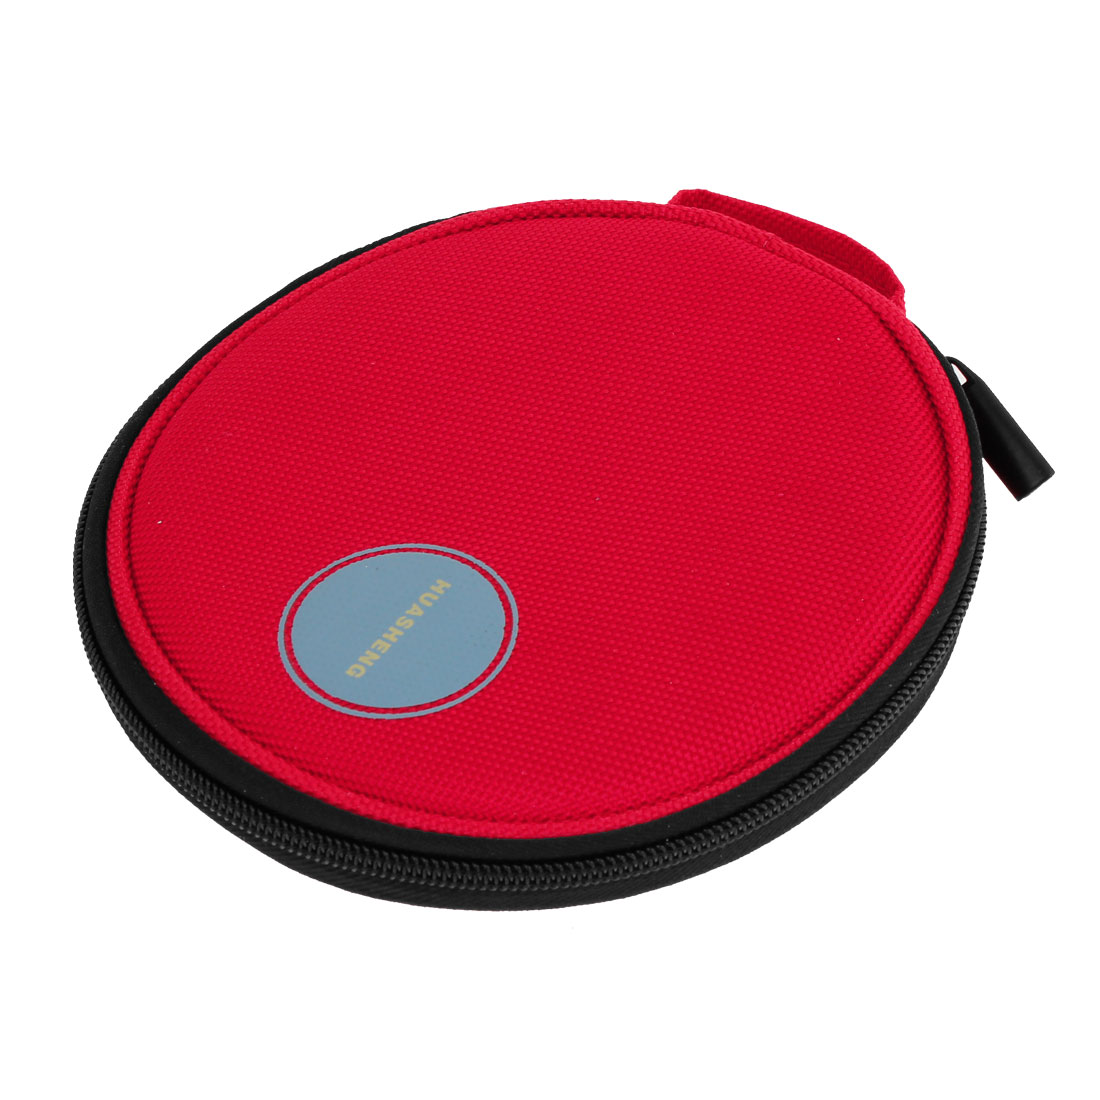 Red Round Oxford Fabric 20 Capacity CD DVD Holder Wallet Bag for Car